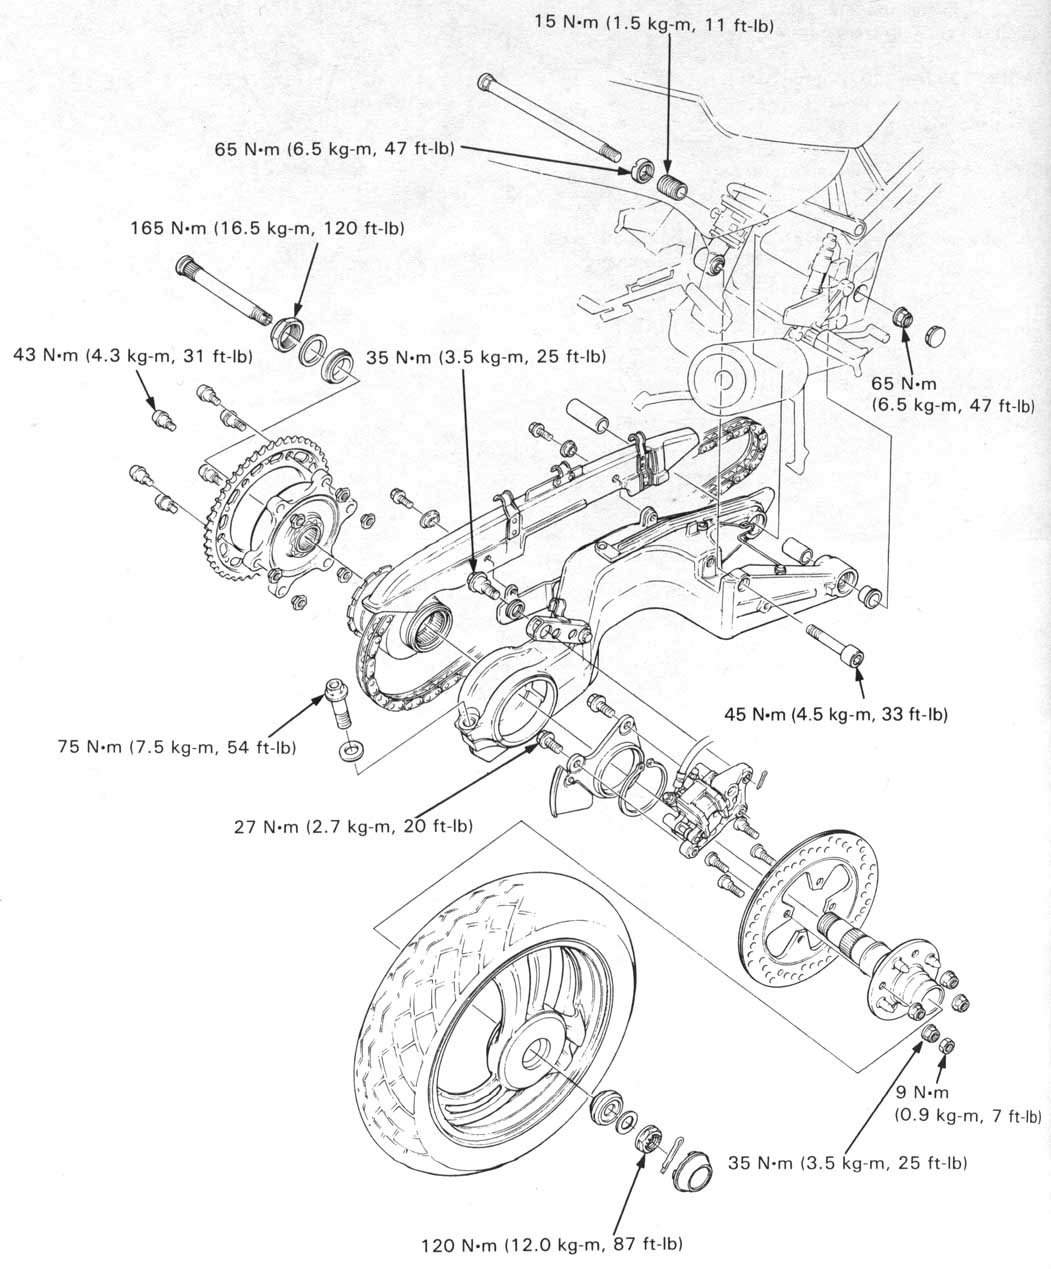 Honda NT650 service manual, section 13, Rear Wheel/Suspension